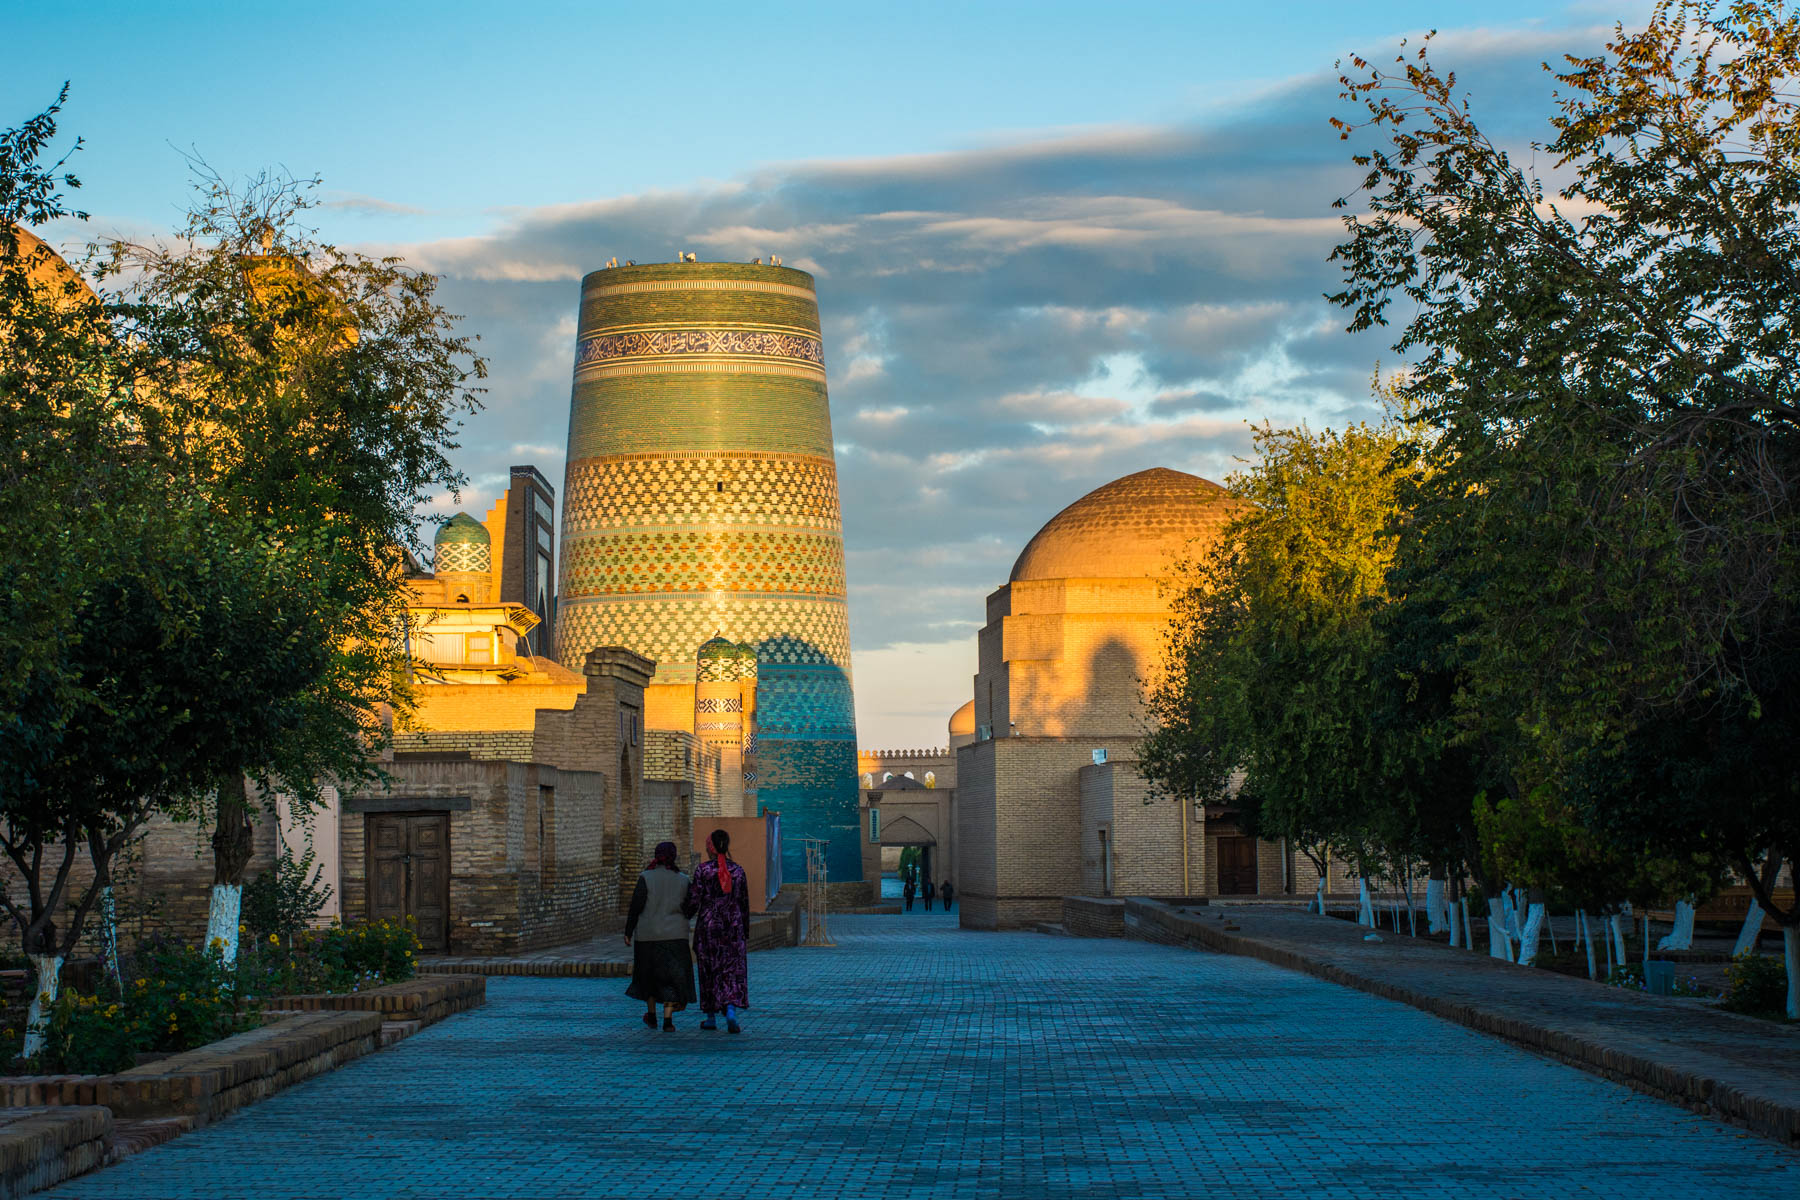 Sunrise in the old city of Khiva